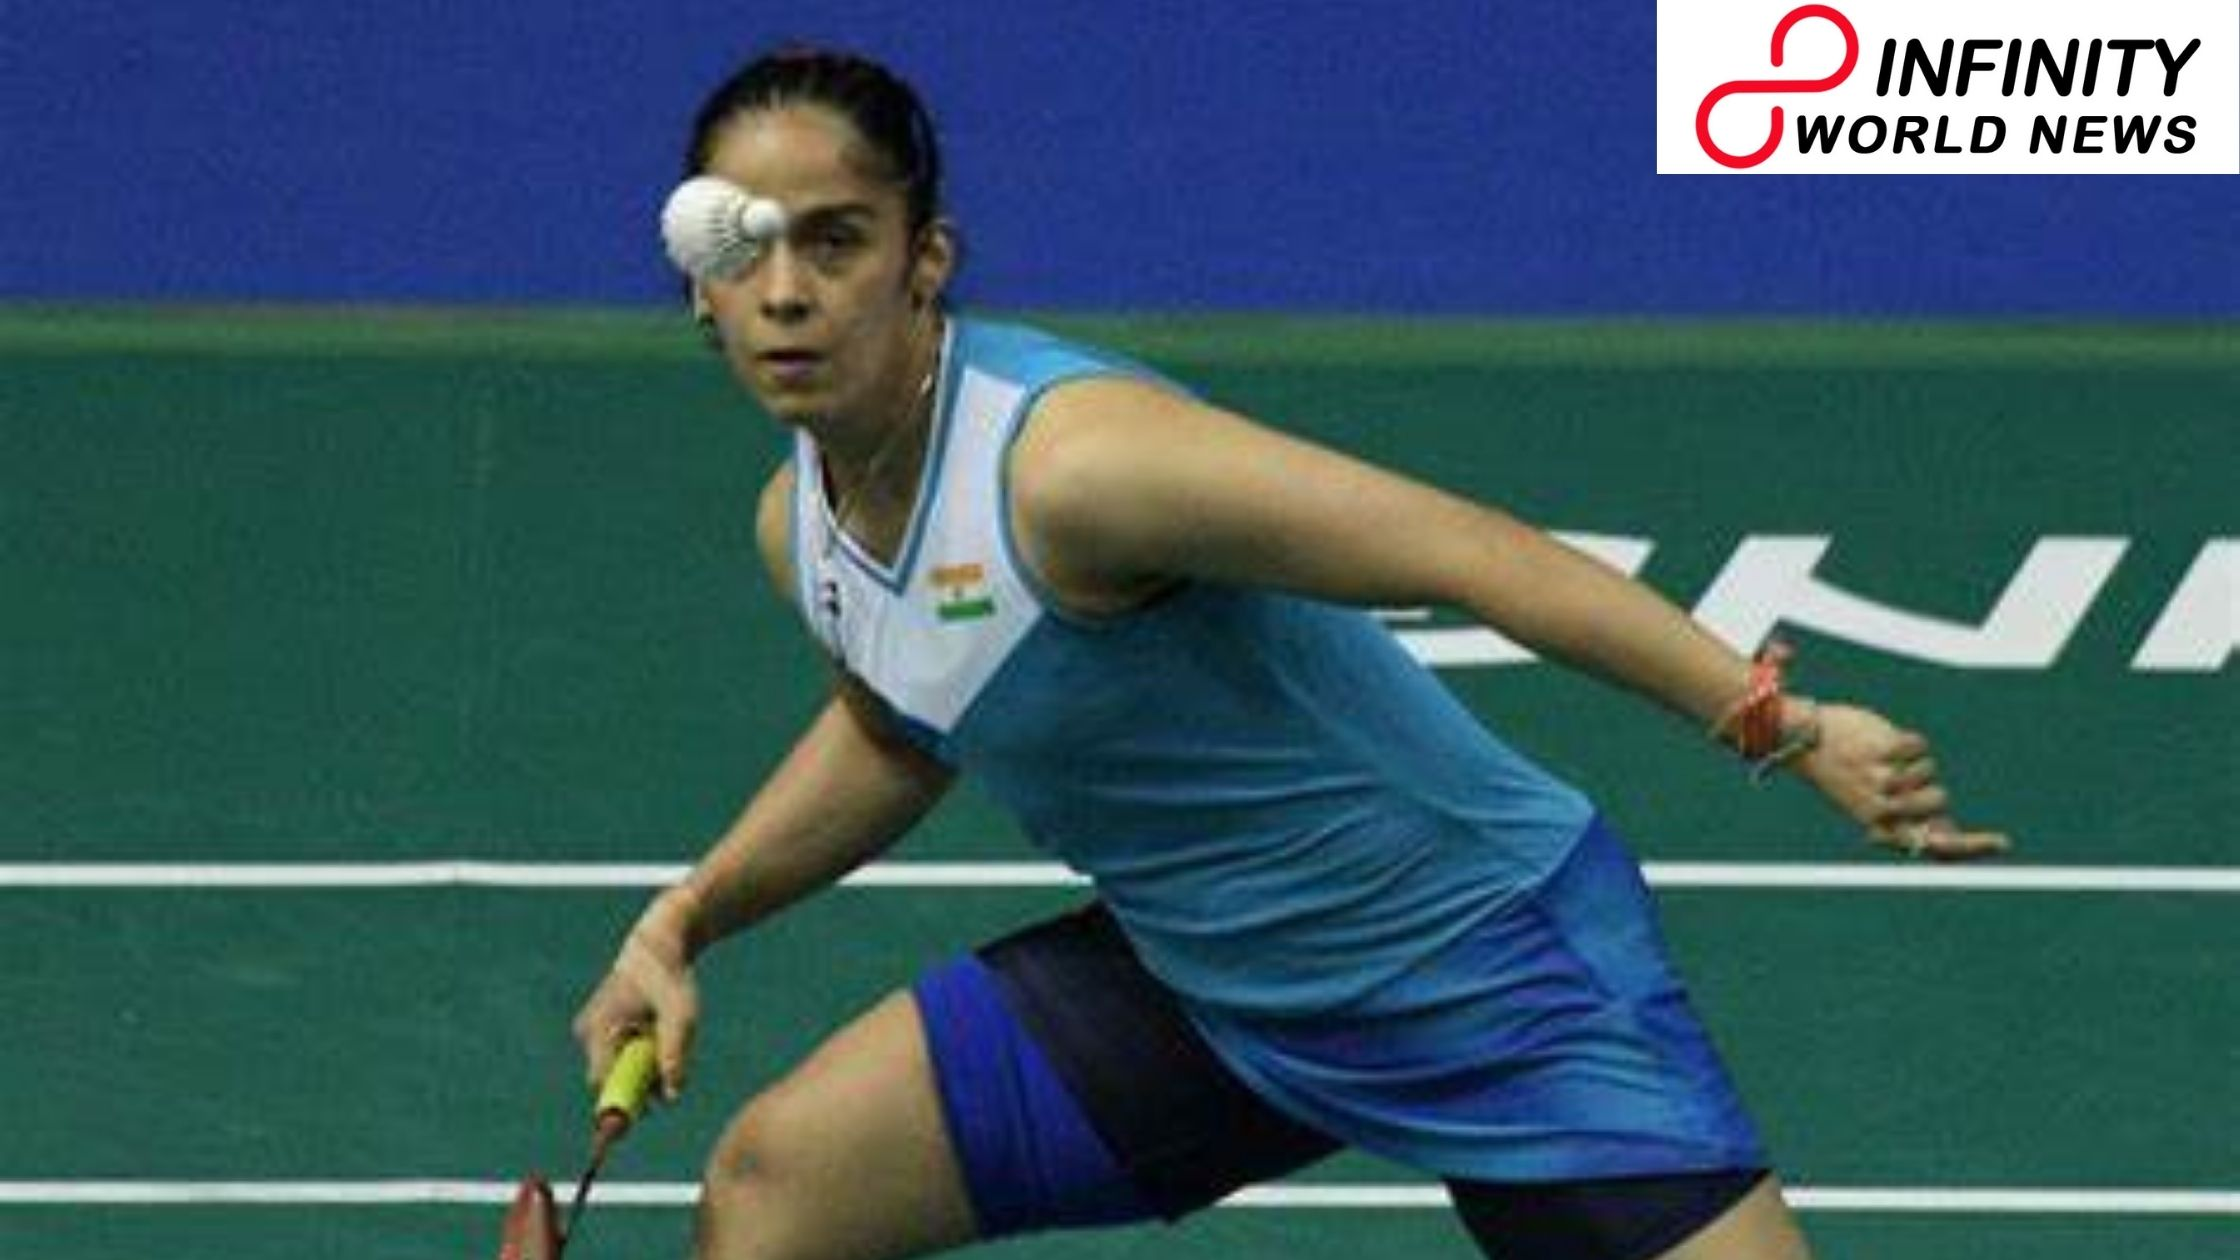 Thailand Open: Saina breaks out in the wake of missing to Thailand's Busanan in the 2nd round